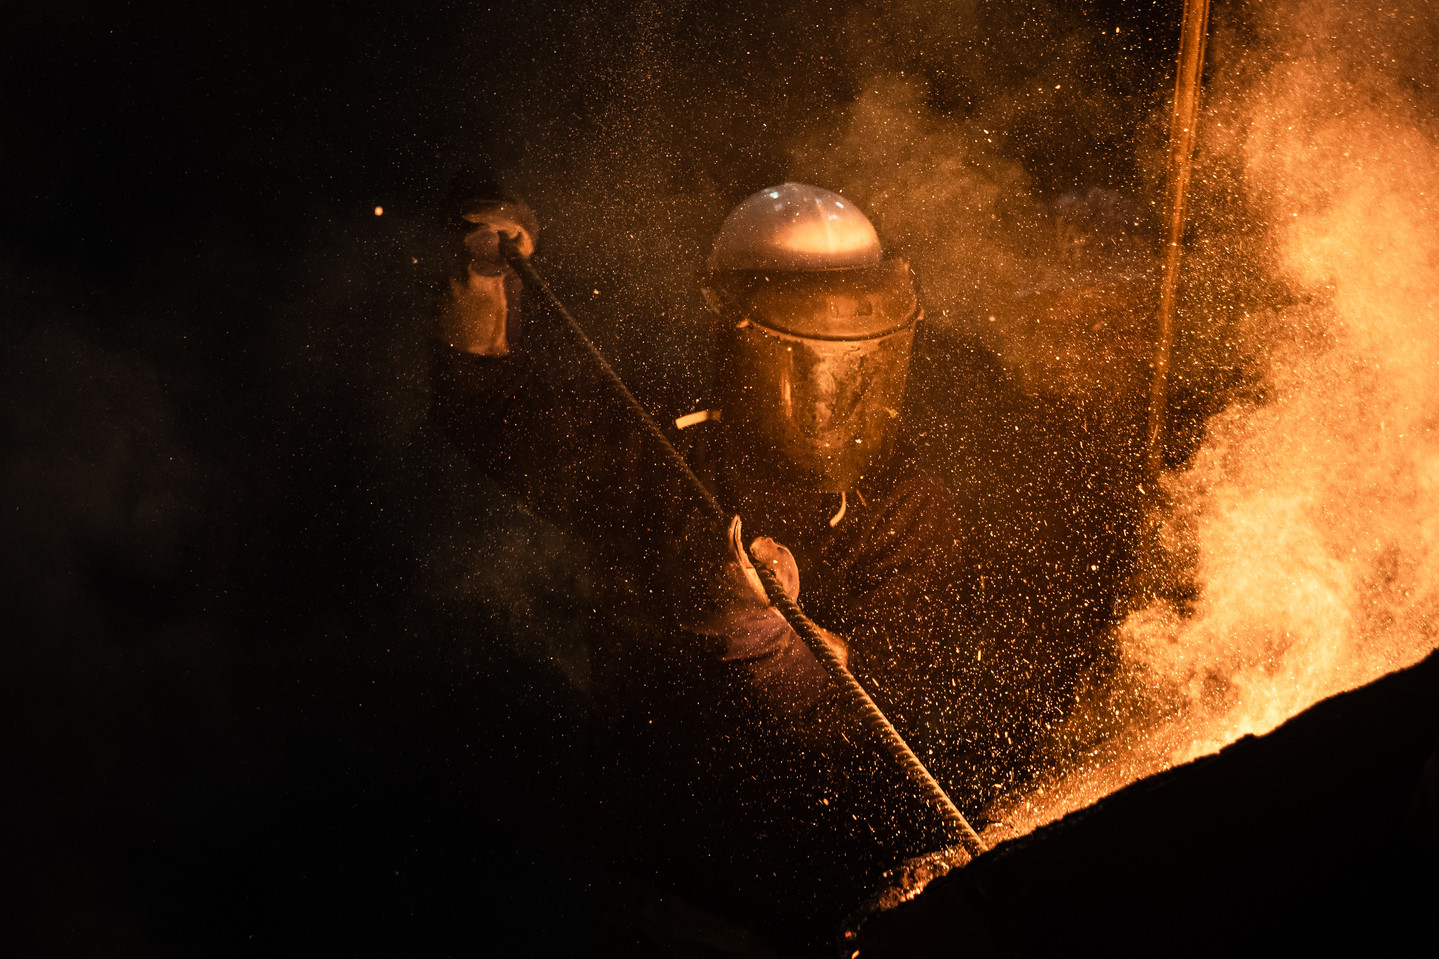 "A worker at Anaconda Foundry Fabrication Company tranfers molten menganese into a mold during a pour on March 3, 2020. The foundry in Ananconda, Montana, has been in constant operation since the days of the ""copper kings."" One of many legacies of copper mining in the area, it is now an employee-owned operation and employs nearly a hundred Anacondans."